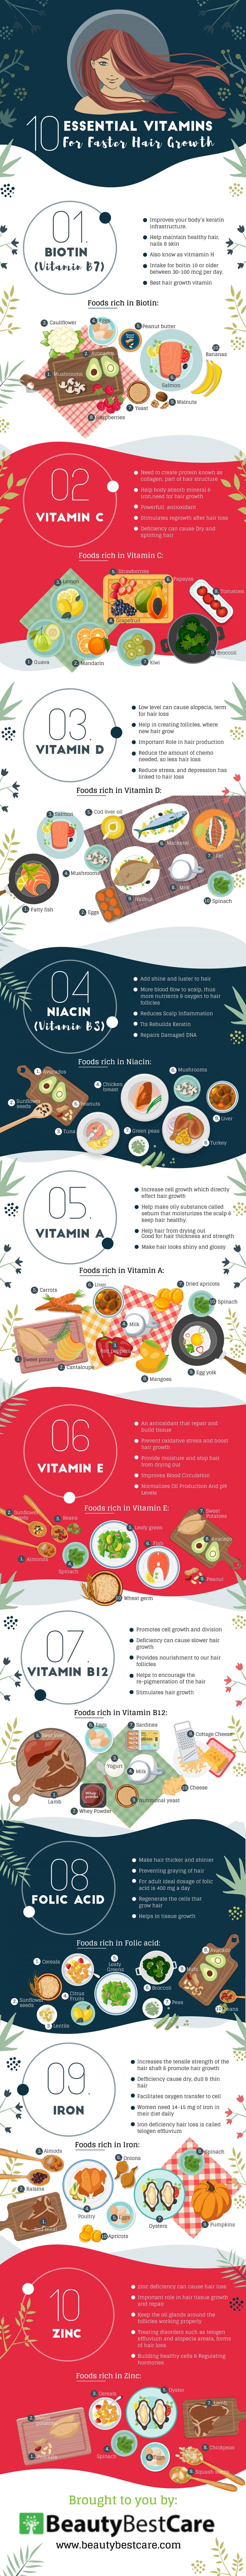 10 Essential Vitamins For Faster Hair Growth  Infographic